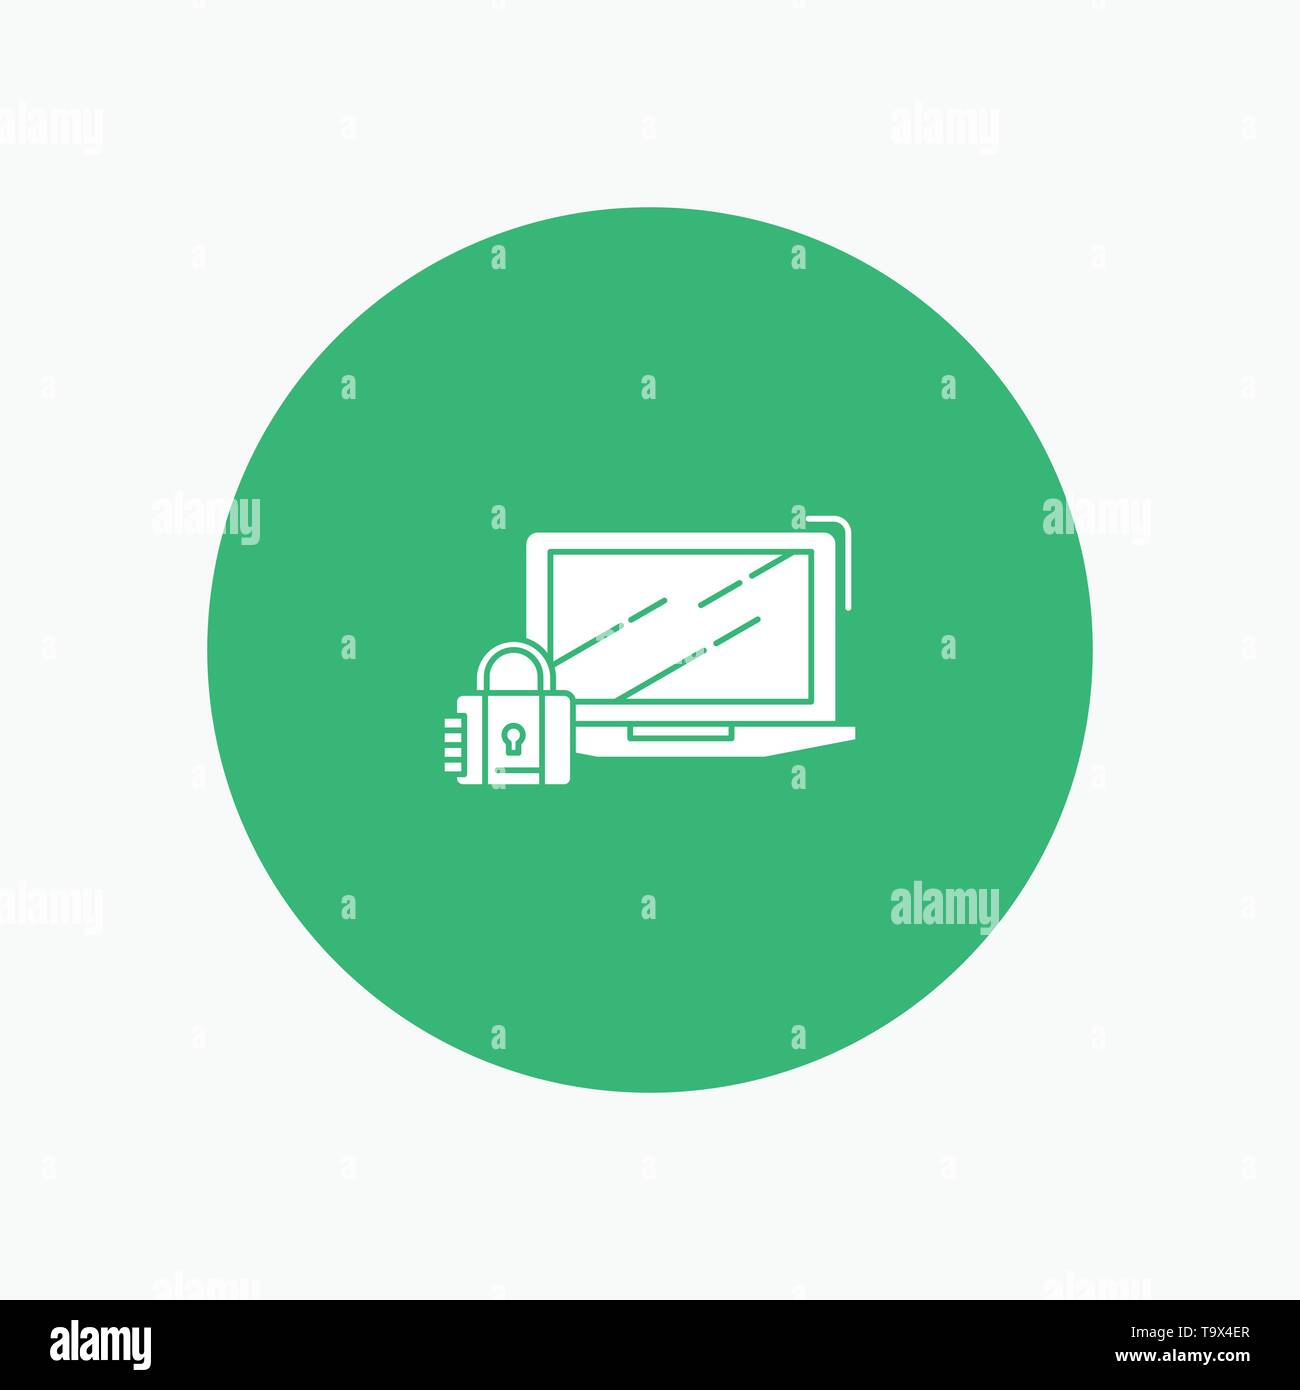 Computer, Padlock, Security, Lock, Login - Stock Image